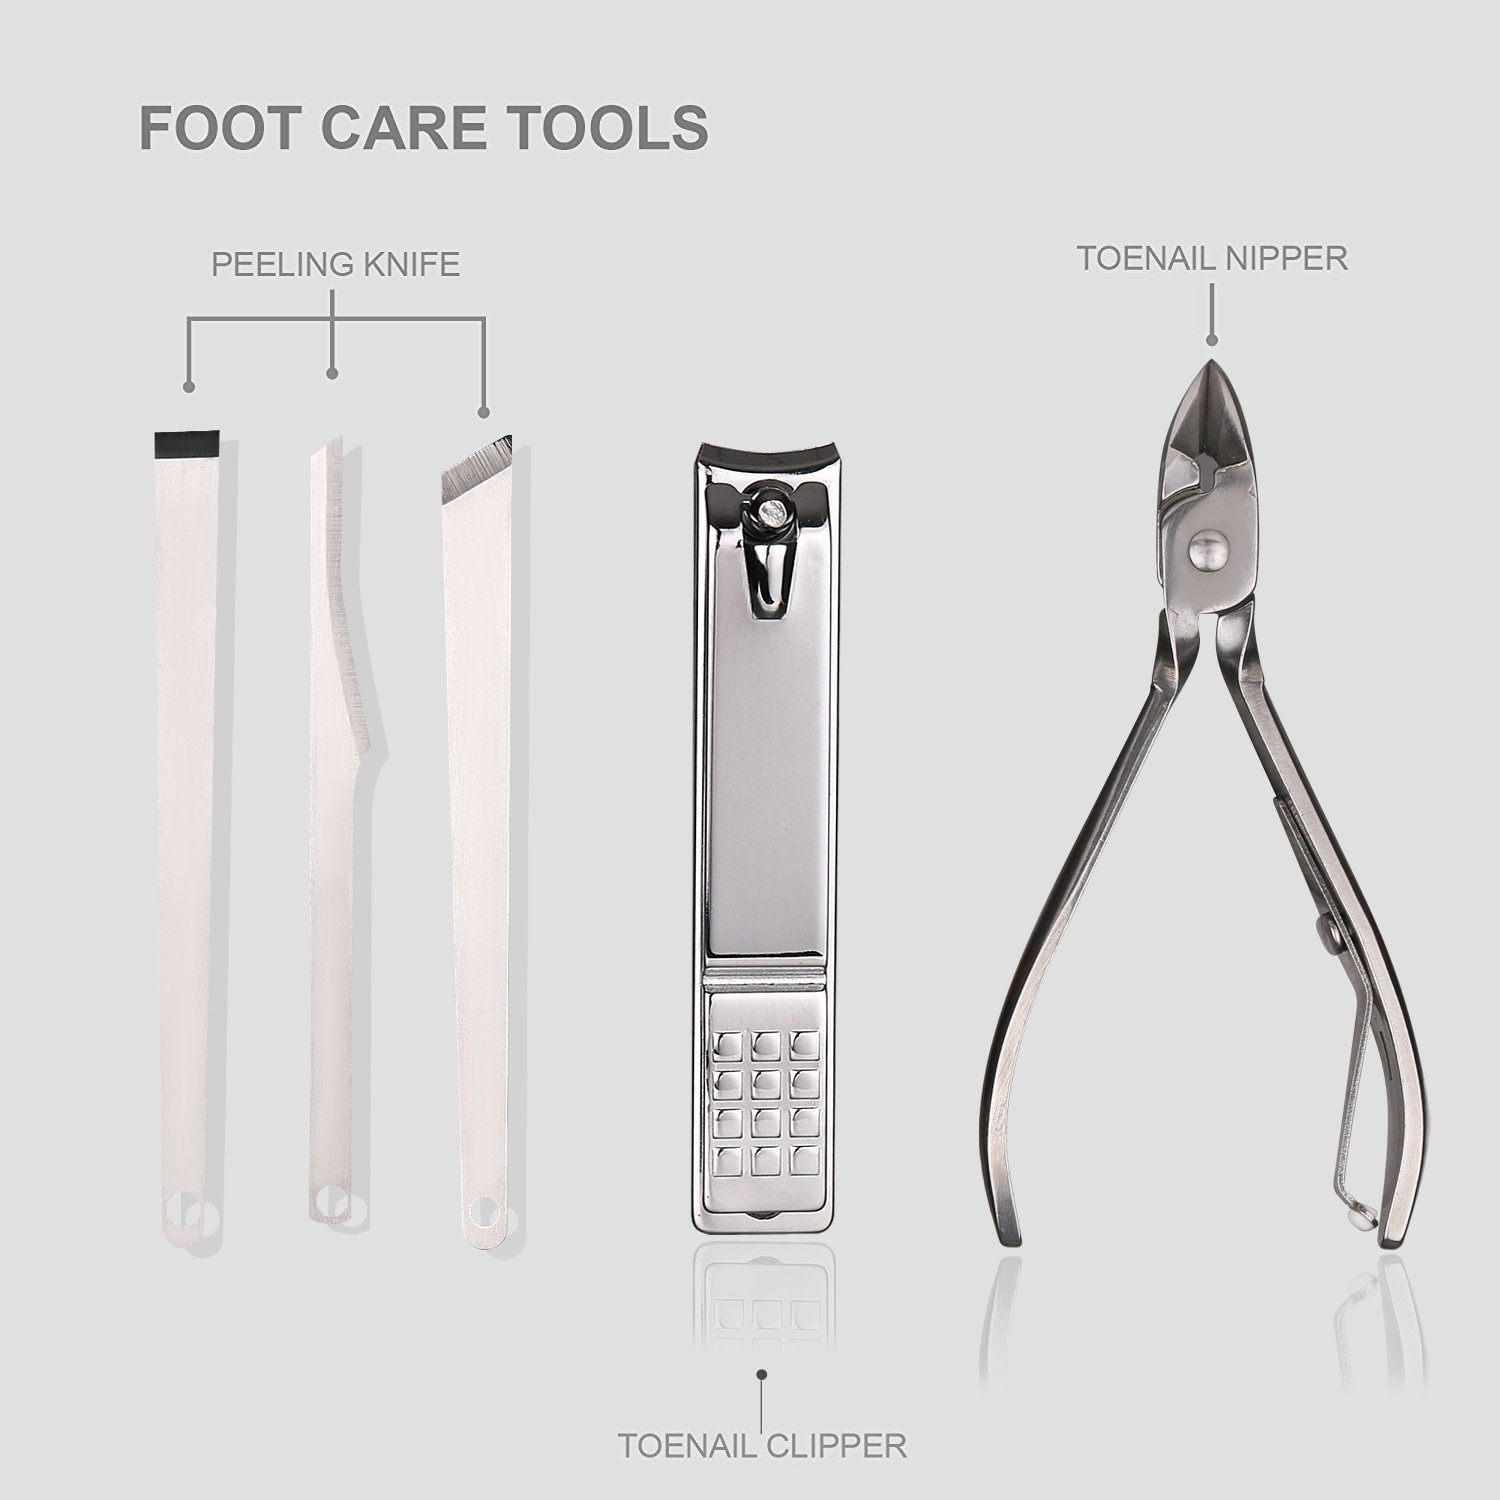 Teamkio Manicure Pedicure Set Nail Clippers Travel Hygiene Kit Stainless Steel Professional Nail Cutter Care Set Scissor Tweezer Knife Ear Pick Utility Tools Grooming Kits with Leather Case 16 pcs